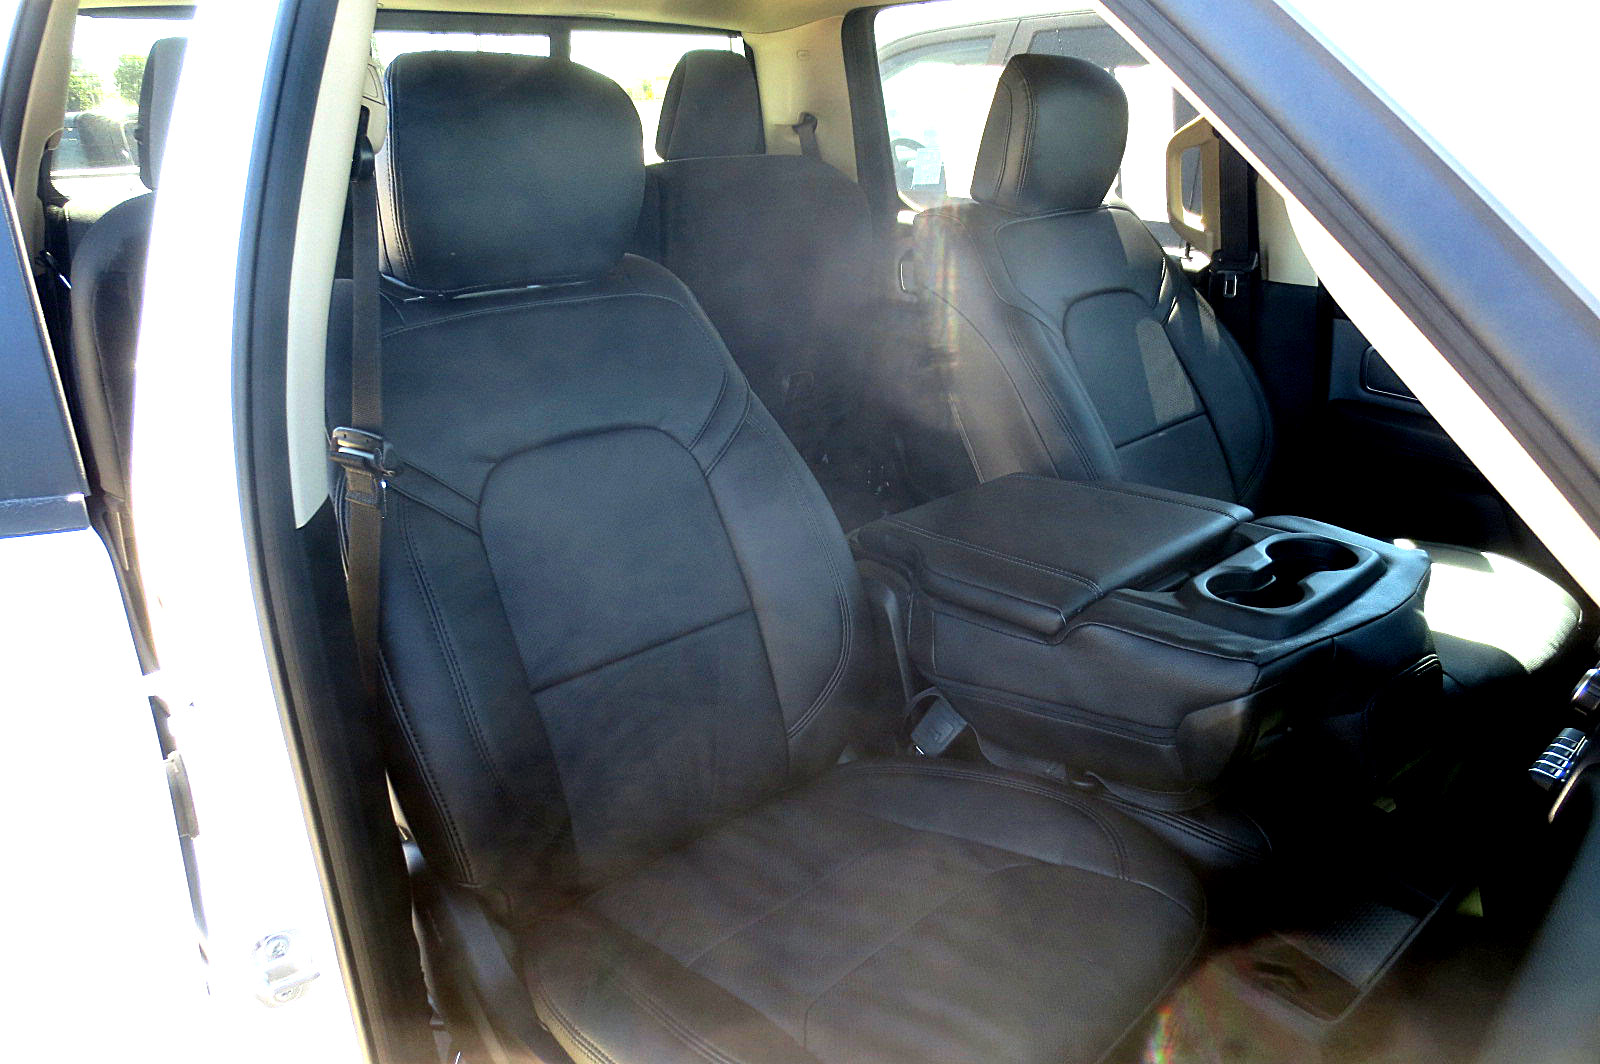 Where Can I Find Seat Covers It S Here Clazzio 2019 Dodge Ram Seat Covers Now Available Only